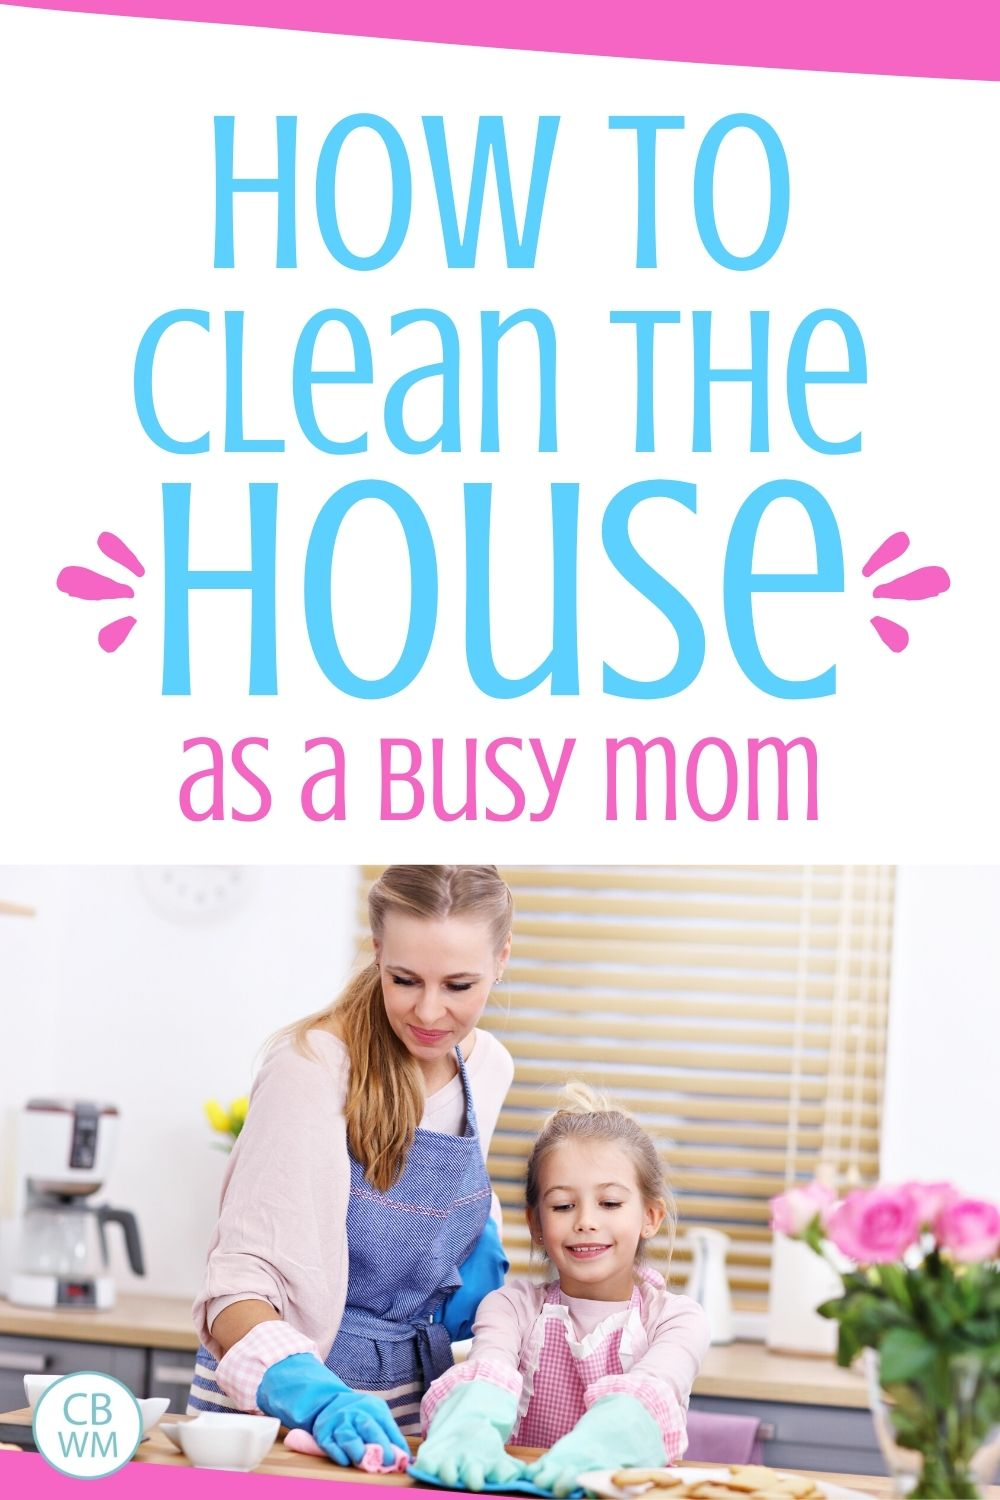 clean the house as a busy mom